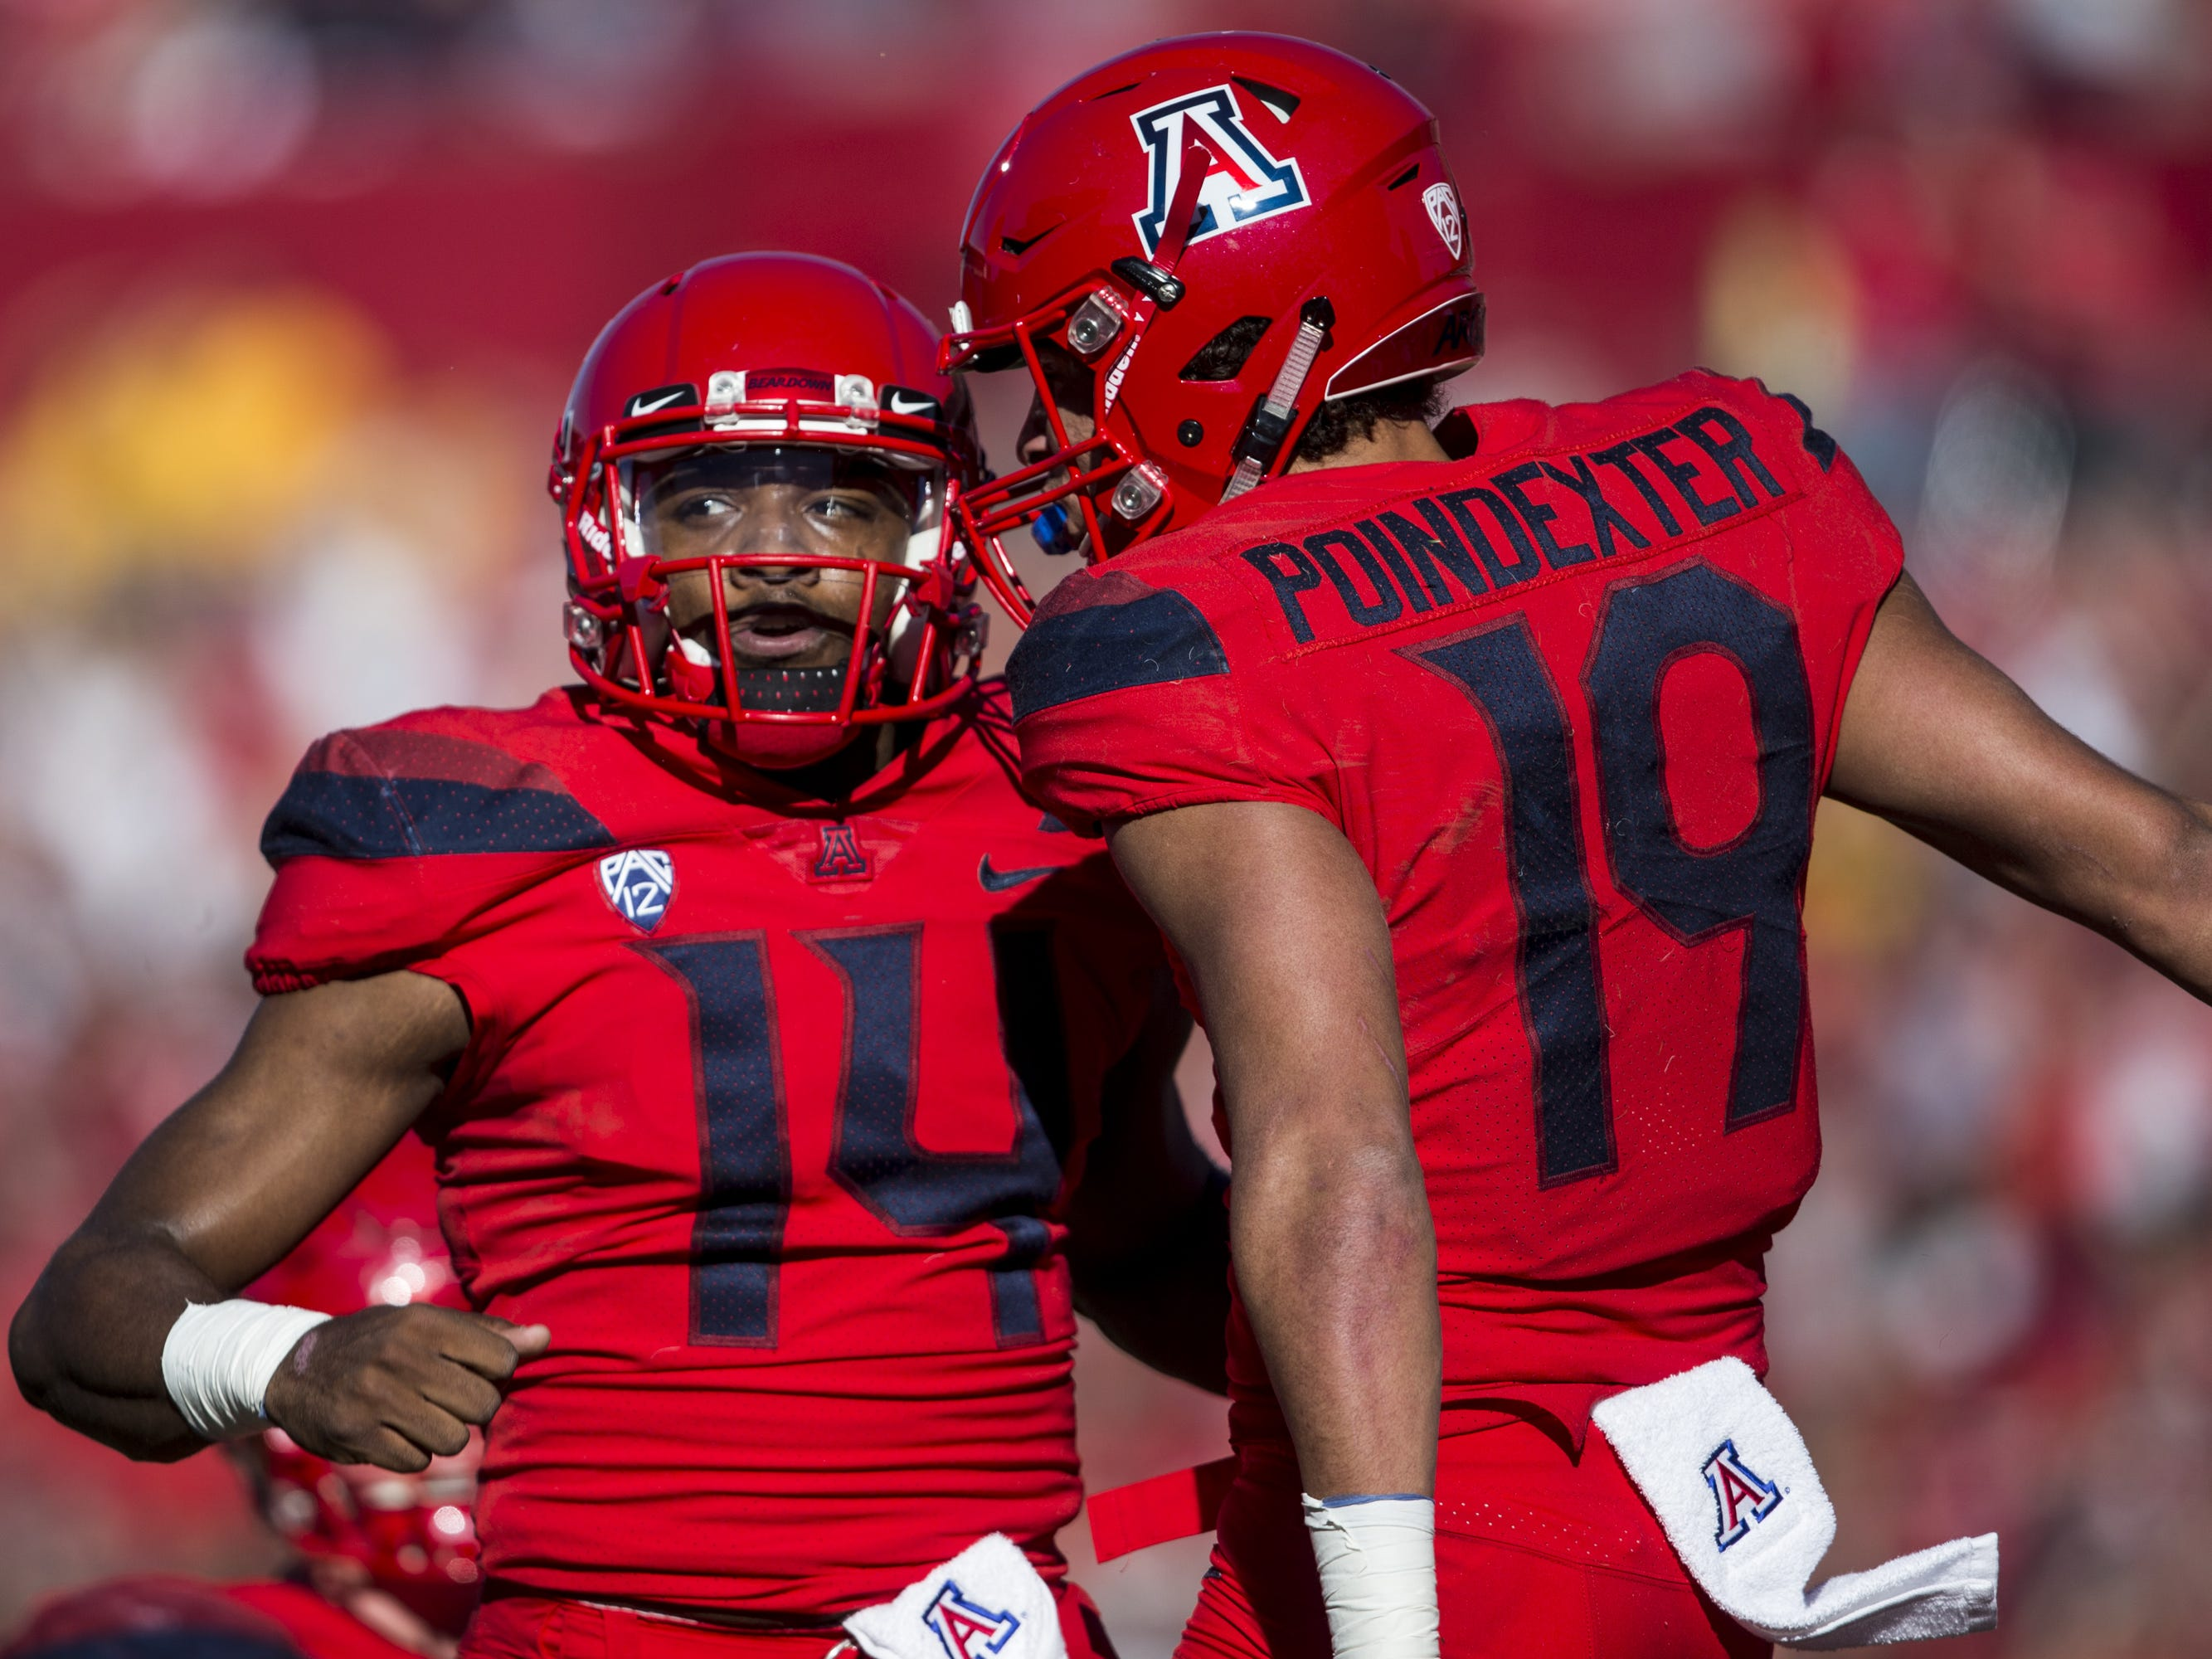 Arizona's Khalil Tate celebrates with Shawn Poindexter after throwing a touchdown to him against Arizona State during the first half of the Territorial Cup on Saturday, Nov. 24, 2018, at Arizona Stadium in Tucson, Ariz.